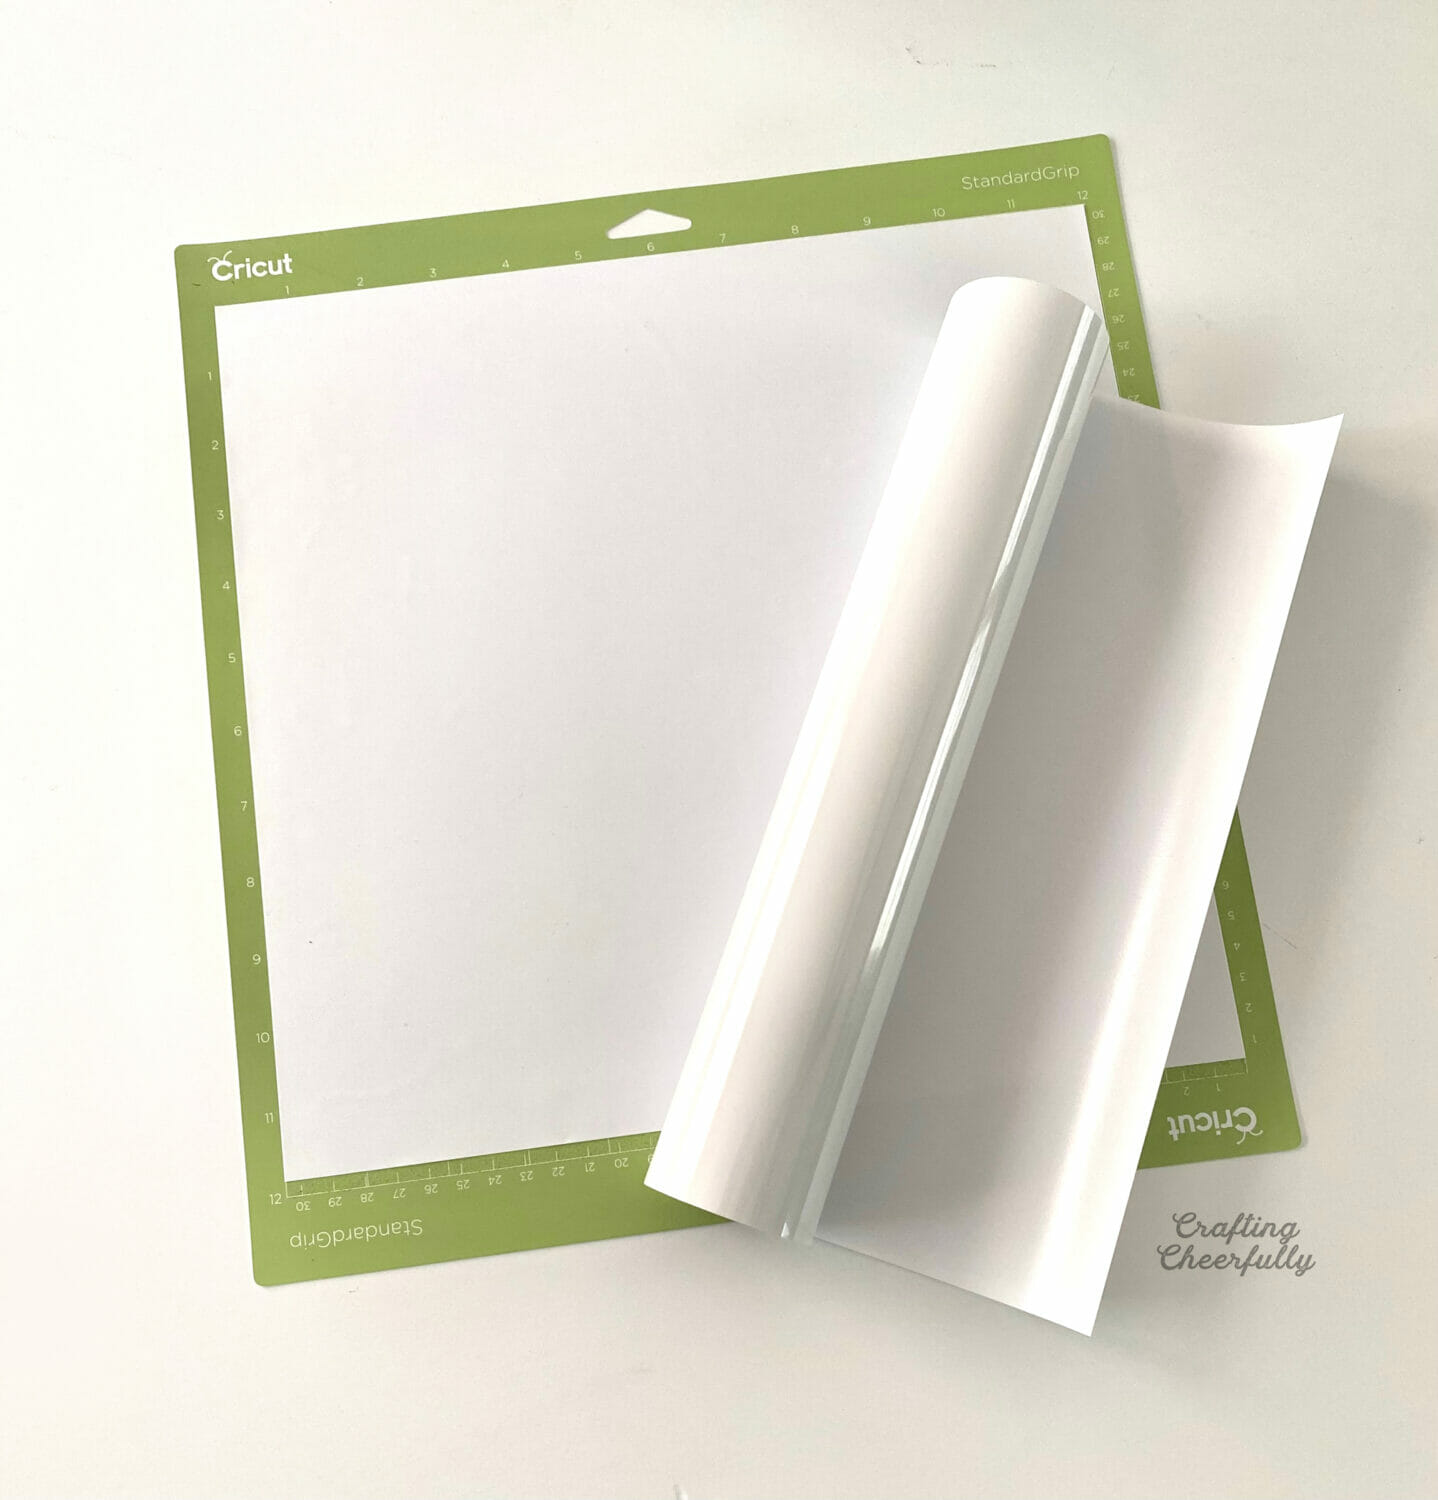 A large piece of glow in the dark heat transfer vinyl is applied to a Cricut cutting mat.